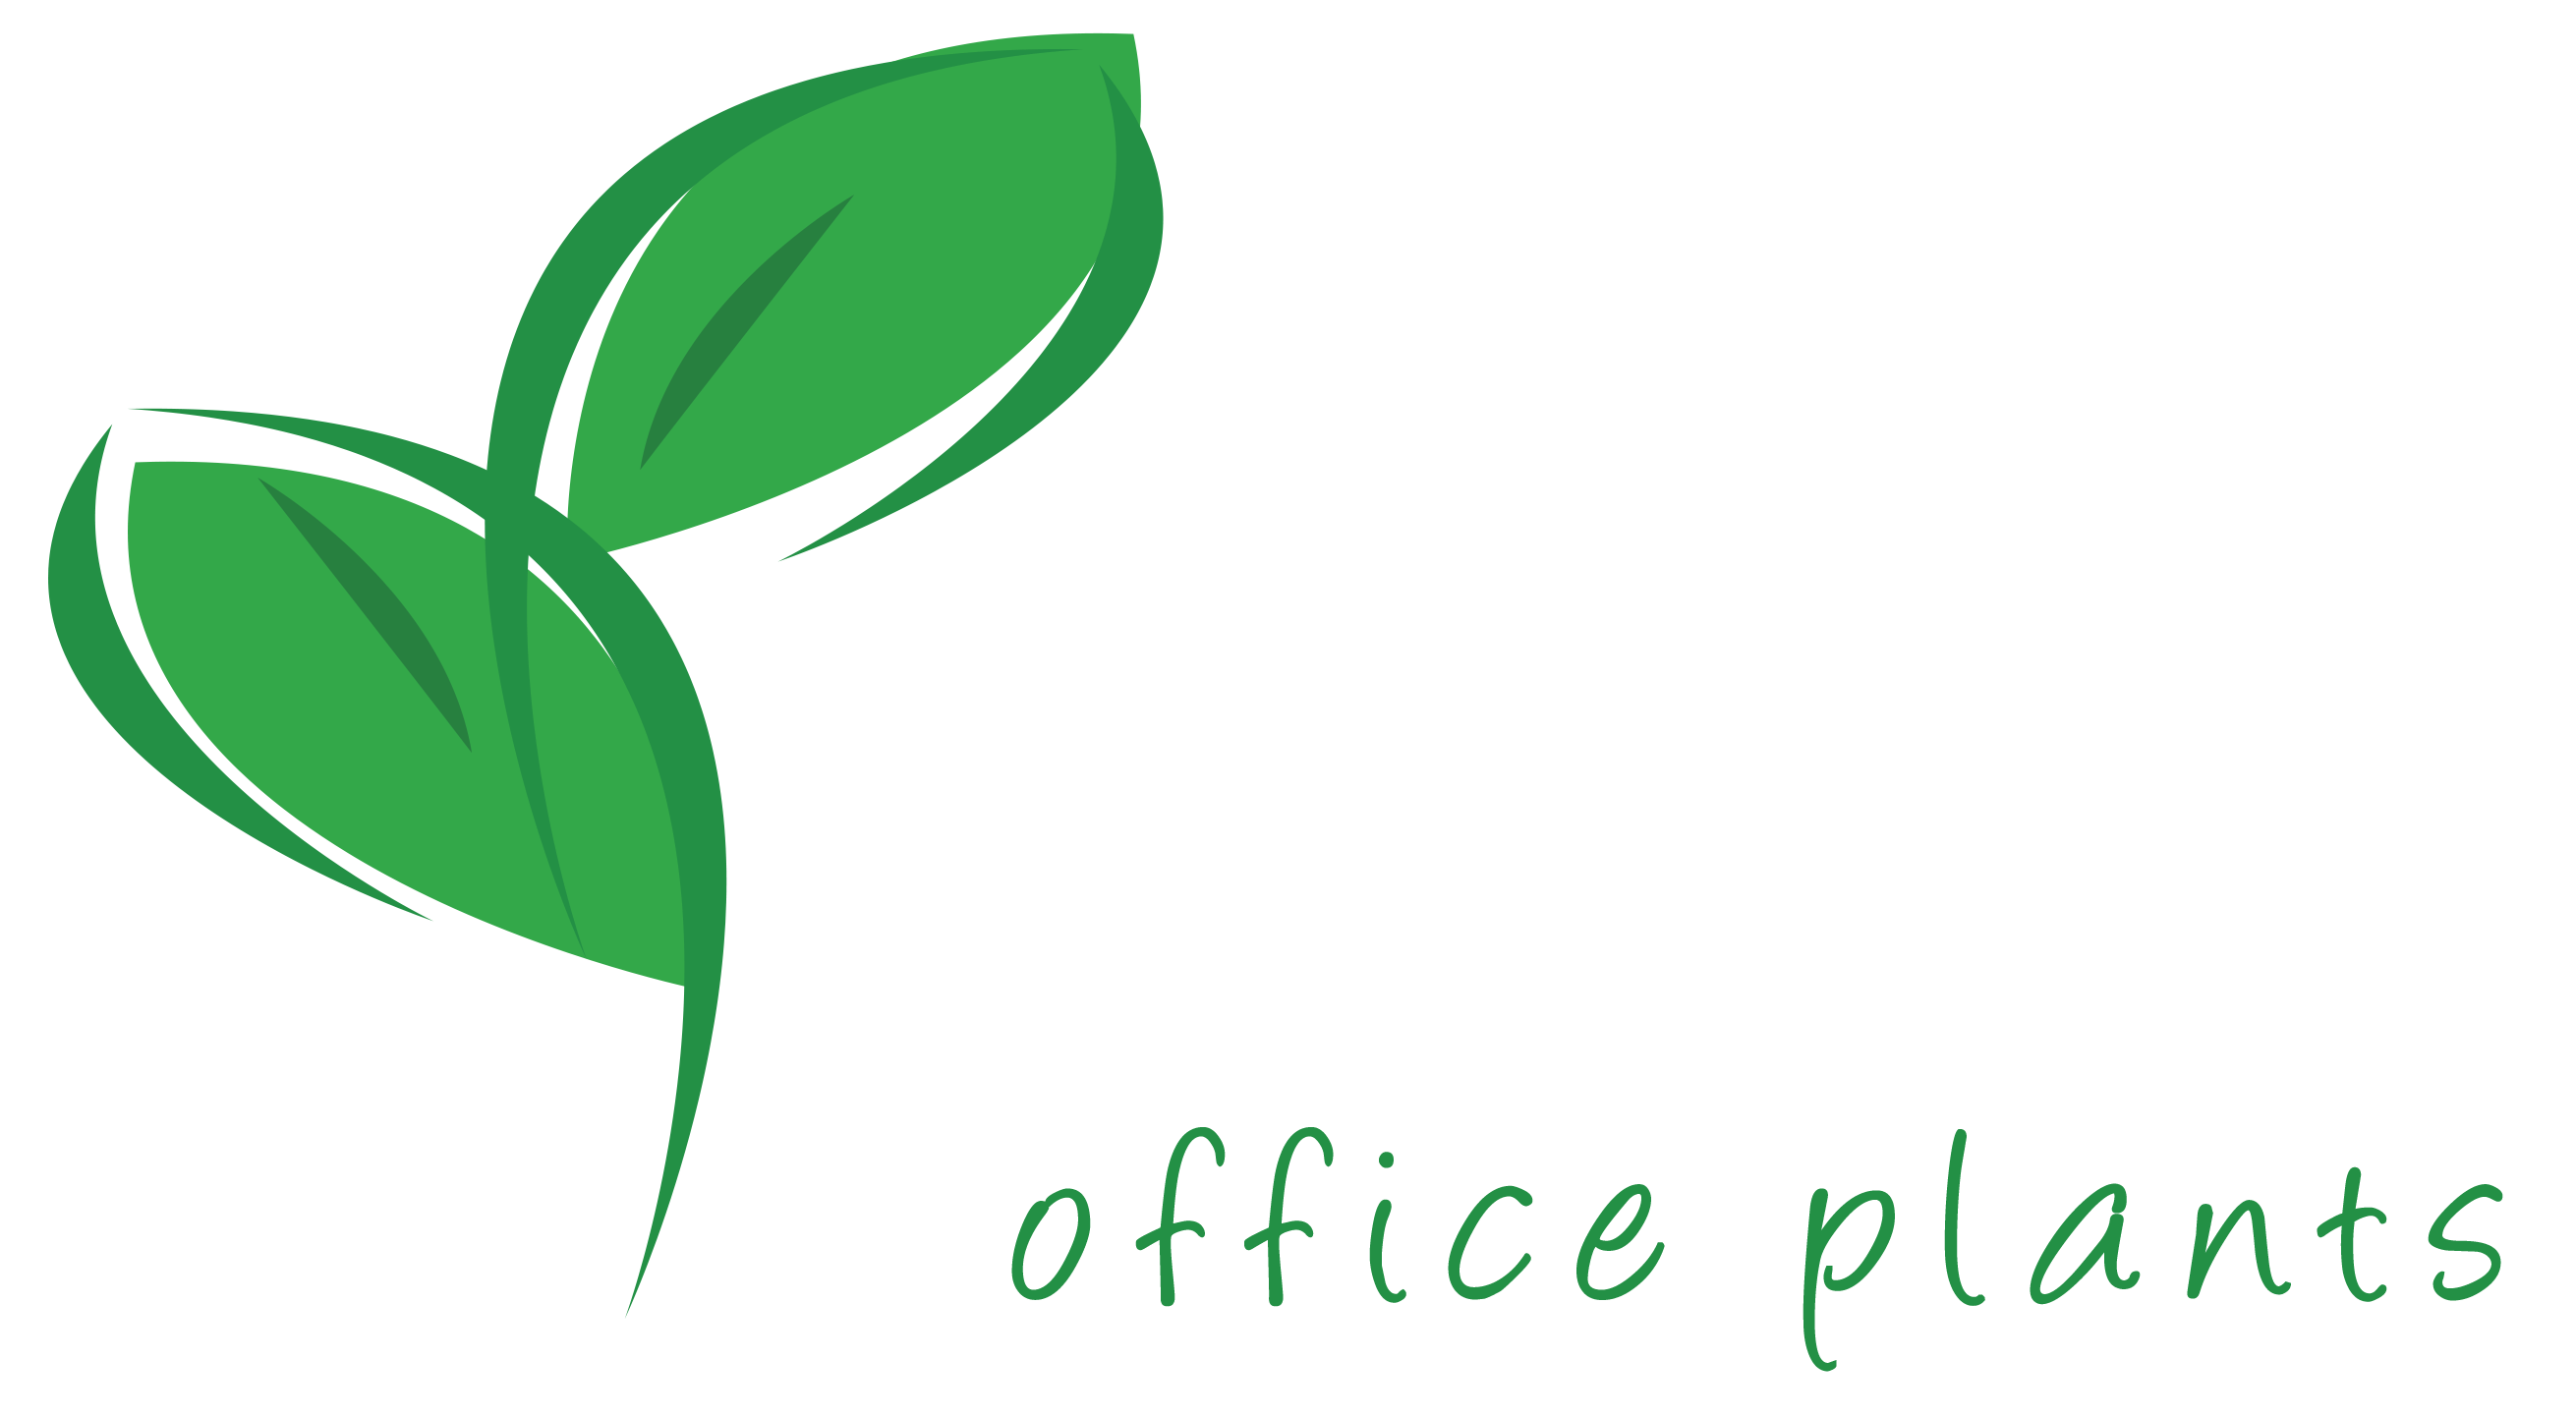 Eco Office Plants logo